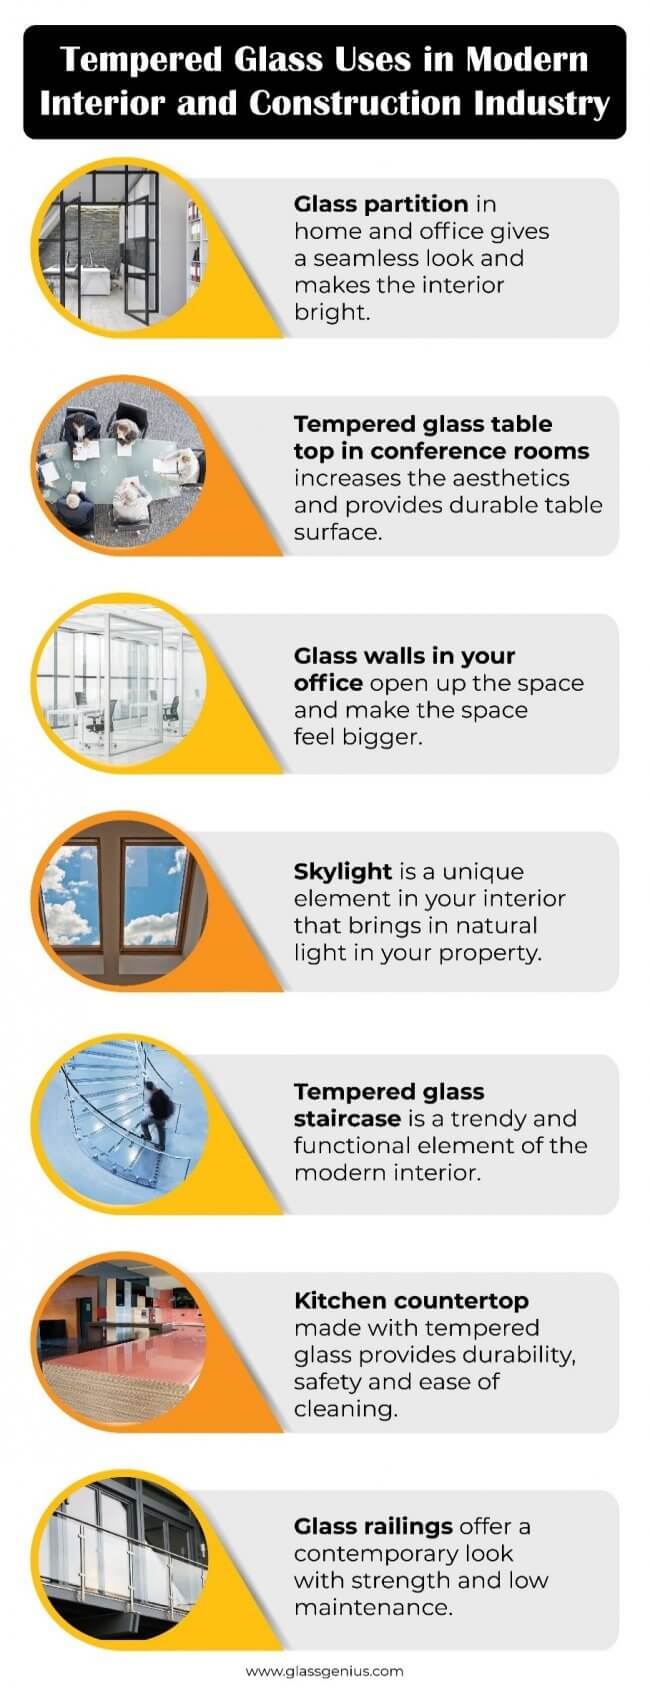 Tempered Glass Uses in Modern Interior and Construction Industry